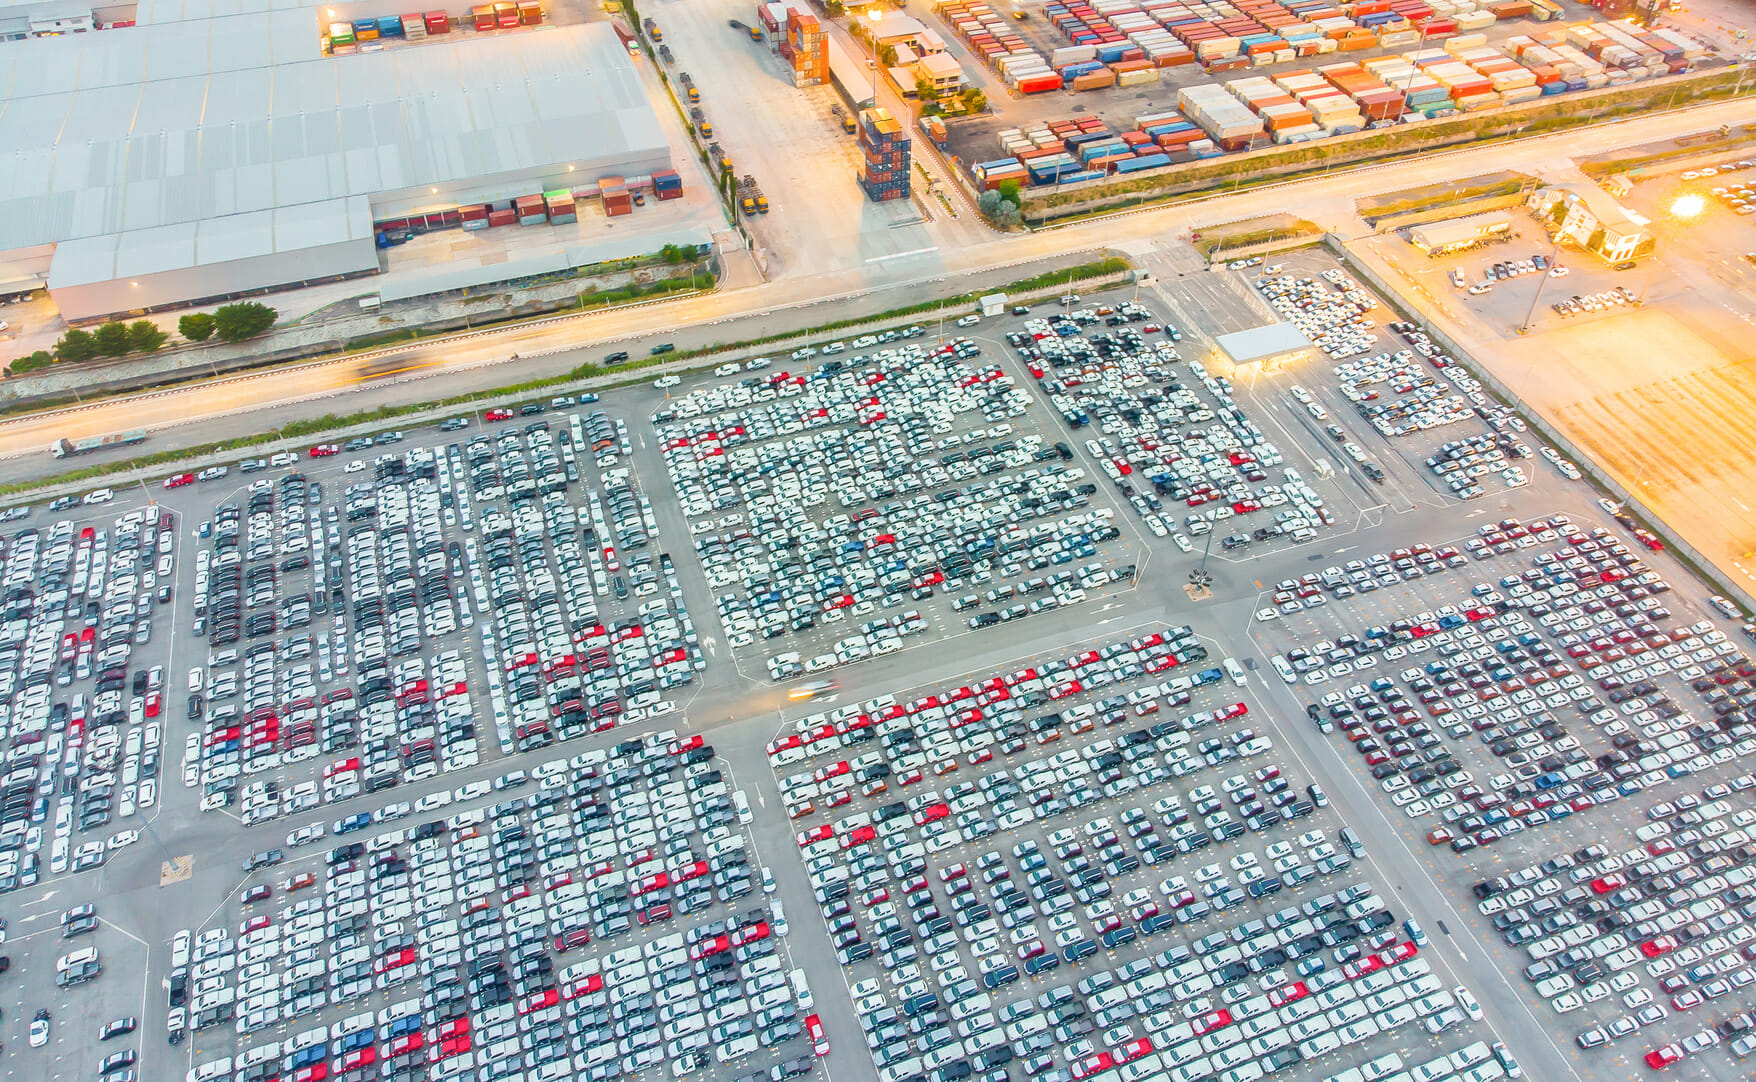 Logistics and transportation of Container Cargo ship and Cargo import/export and business logistics,Aerial view from drone top view new cars lined up in the port for import and export.